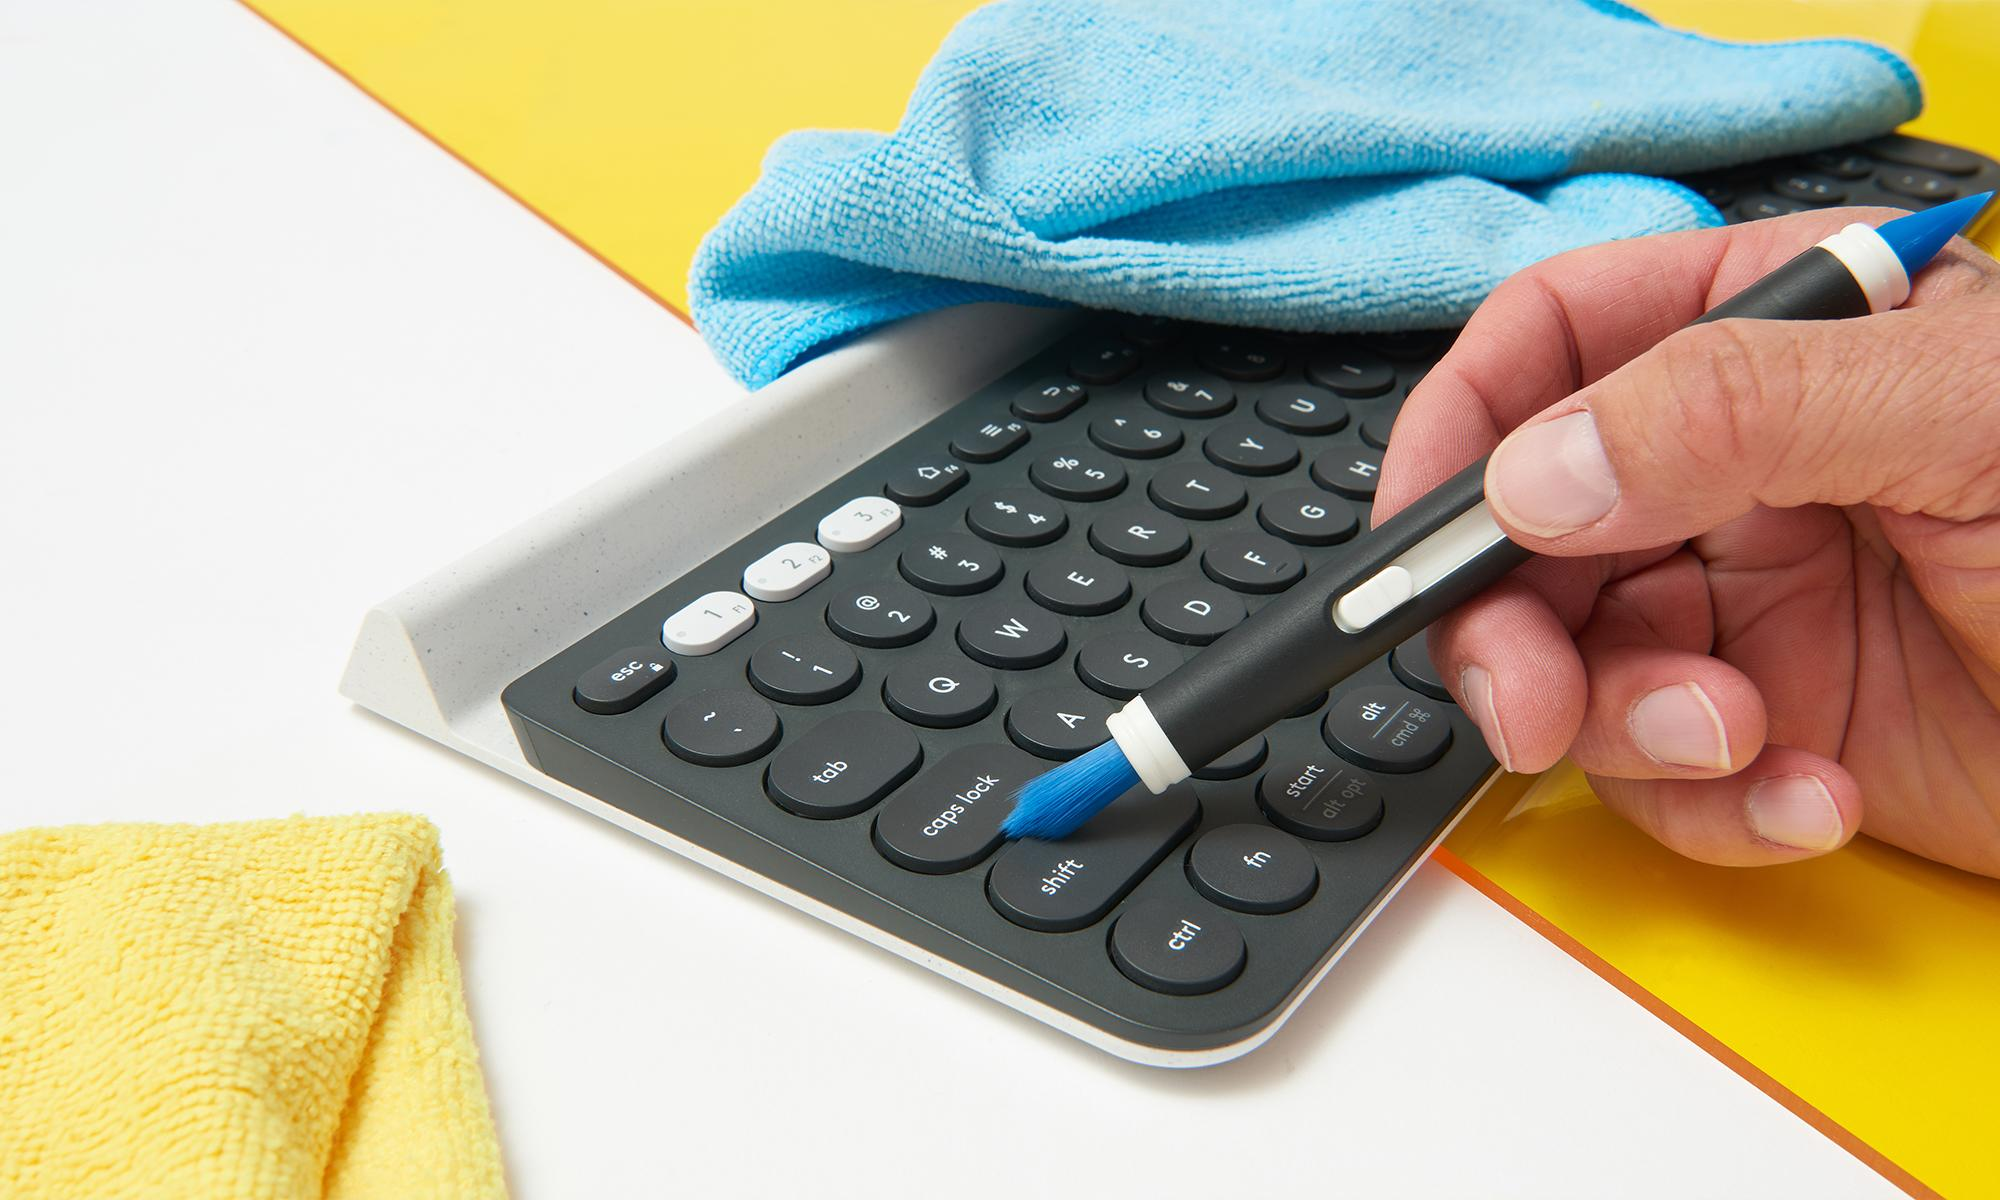 A wireless keyboard is being cleaned by a brush with clothes scatter in the background.